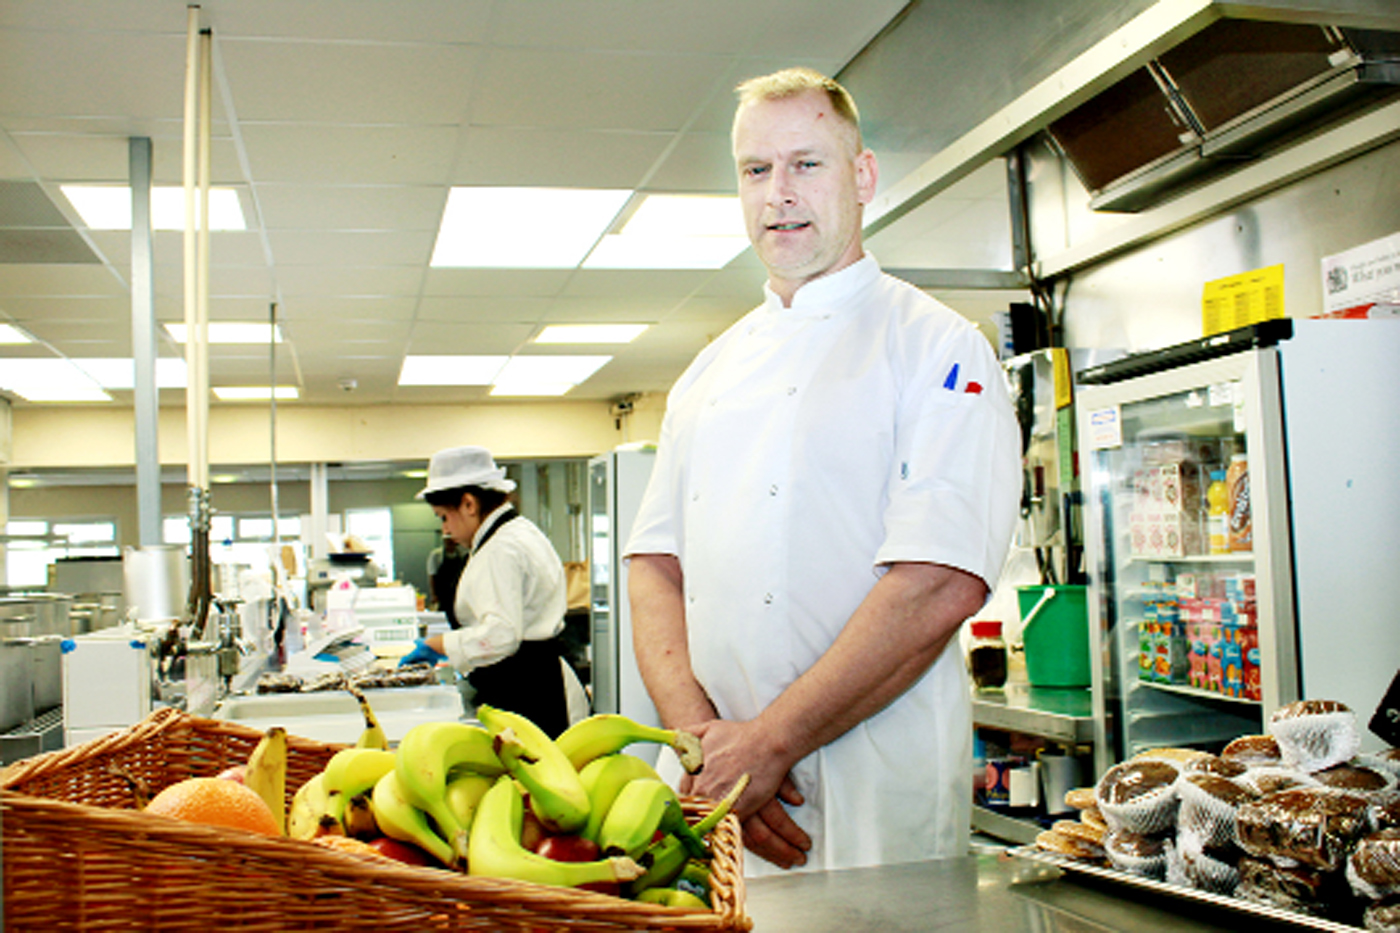 Naval Operation On Menu For Haslingden School Catering Manager  Catering Manager